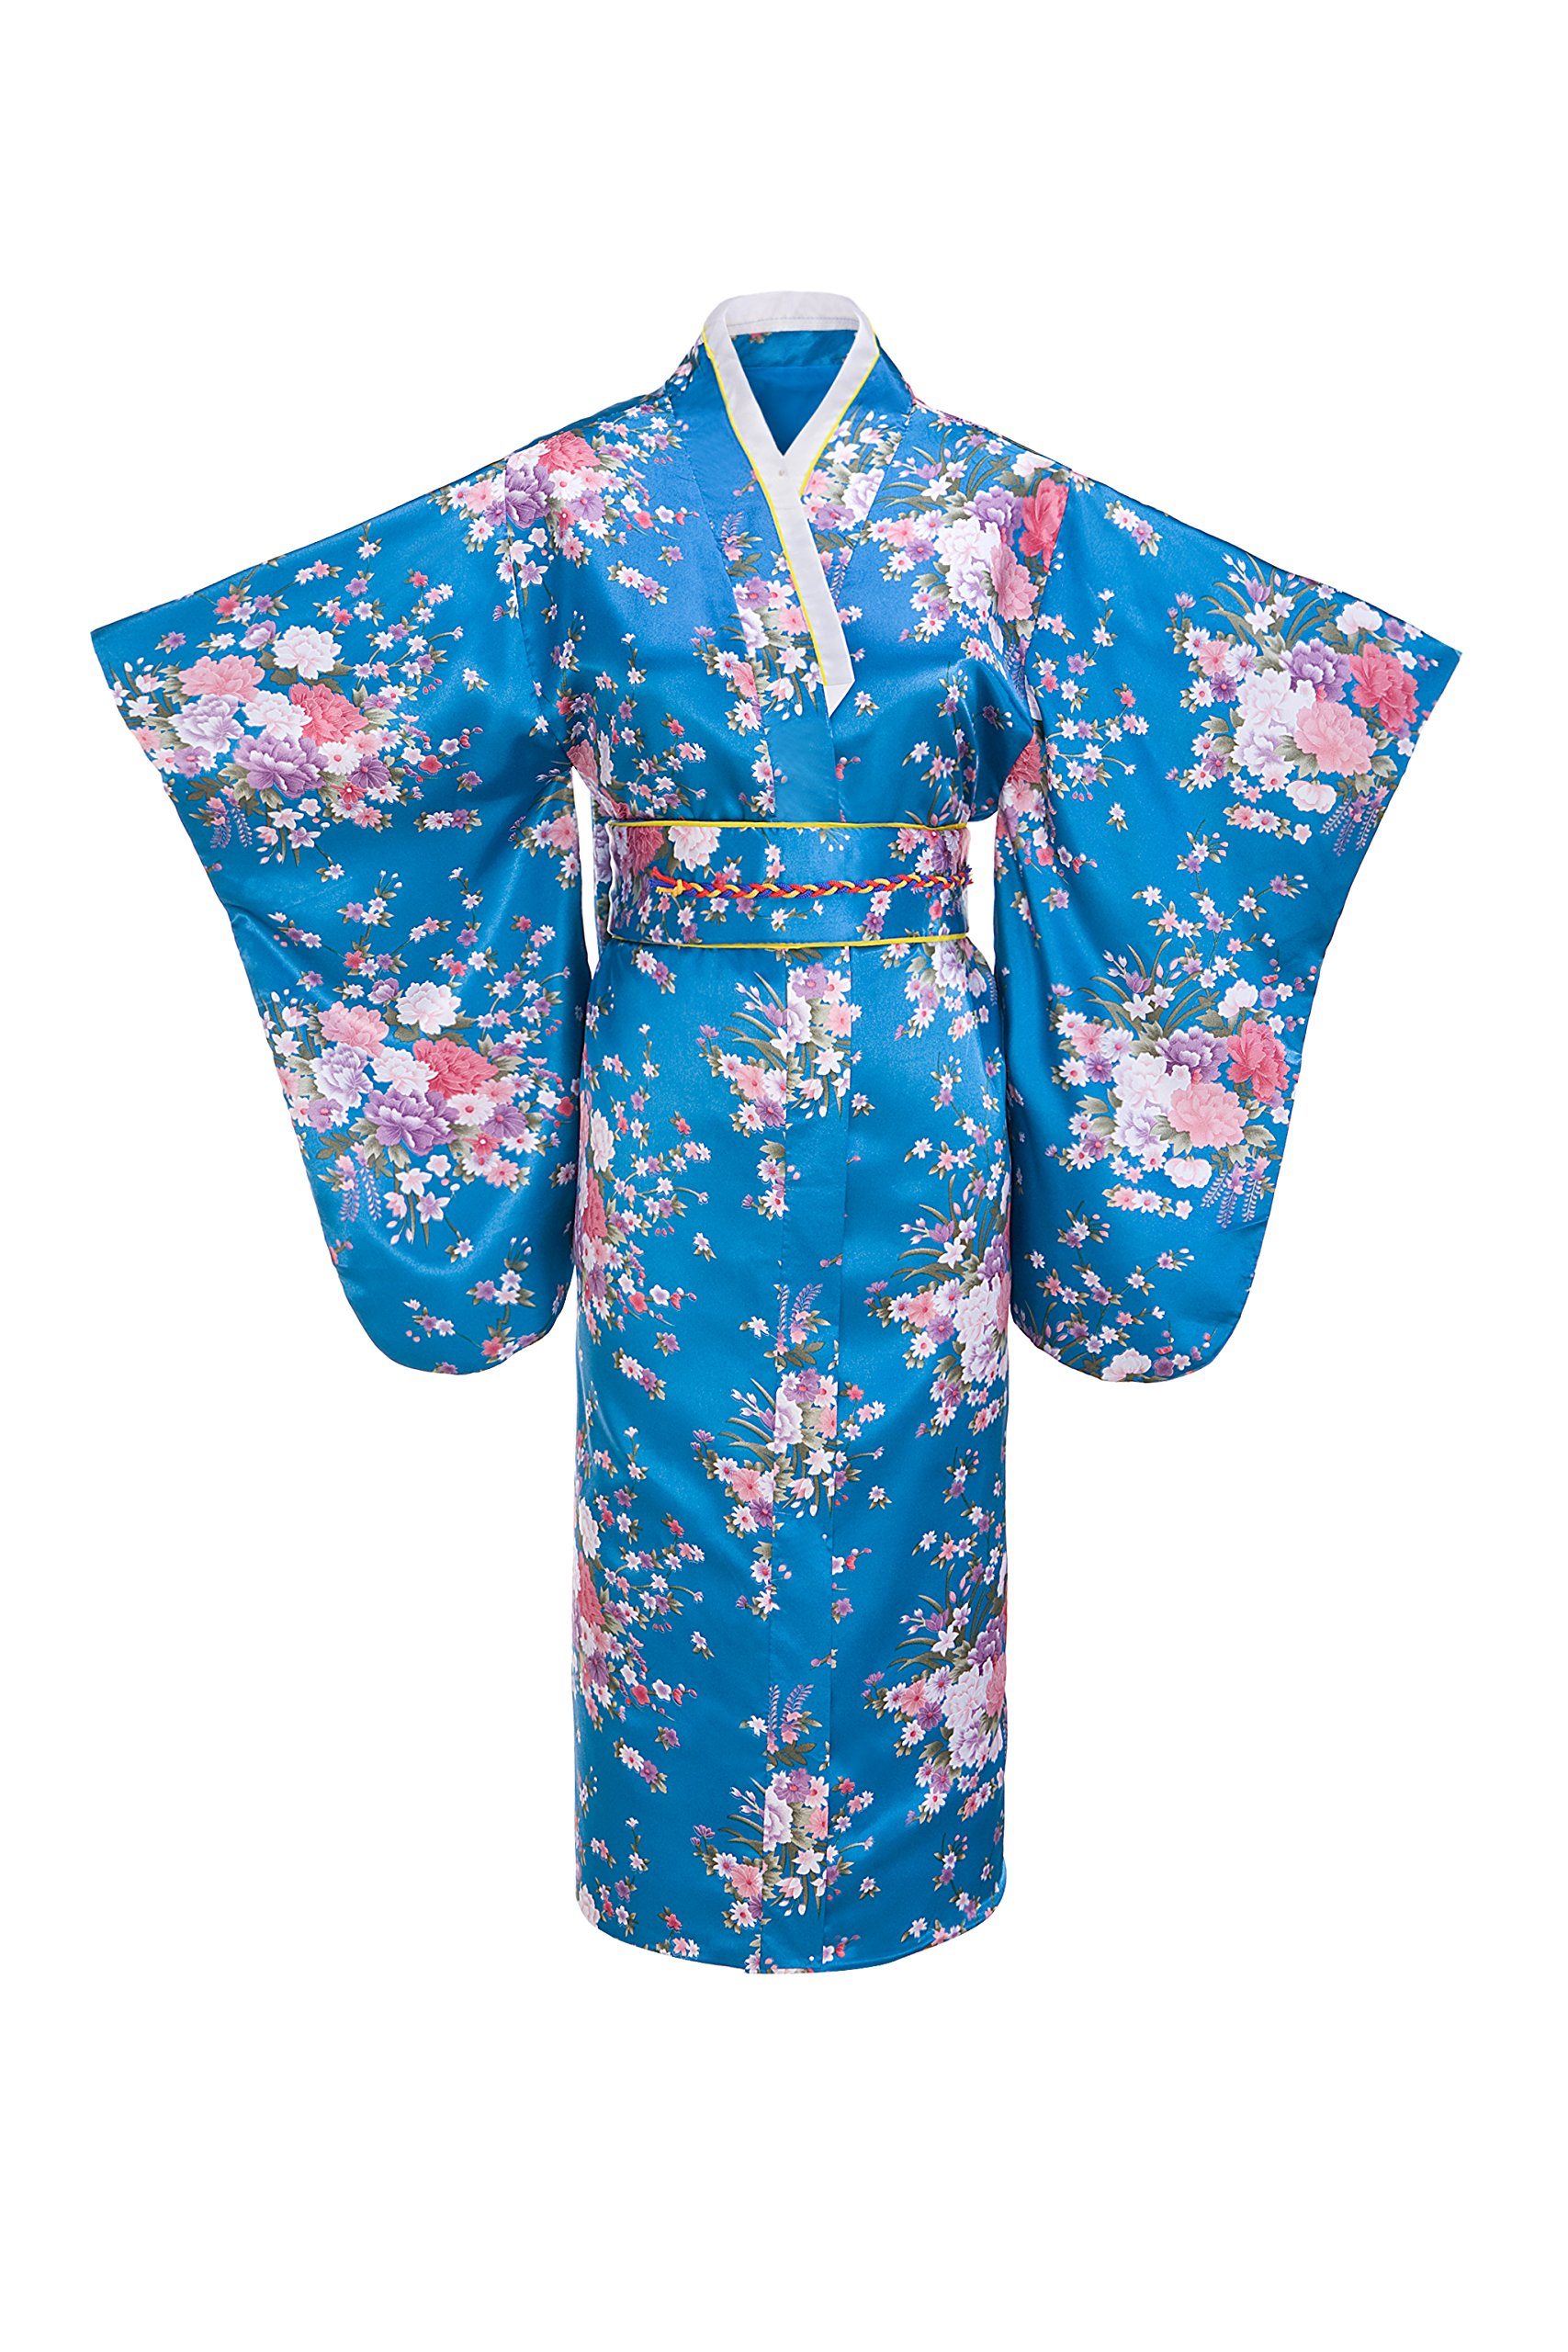 Old-to-new Women's Silk Traditional Japanese Kimono Robe with Floral Print Blue